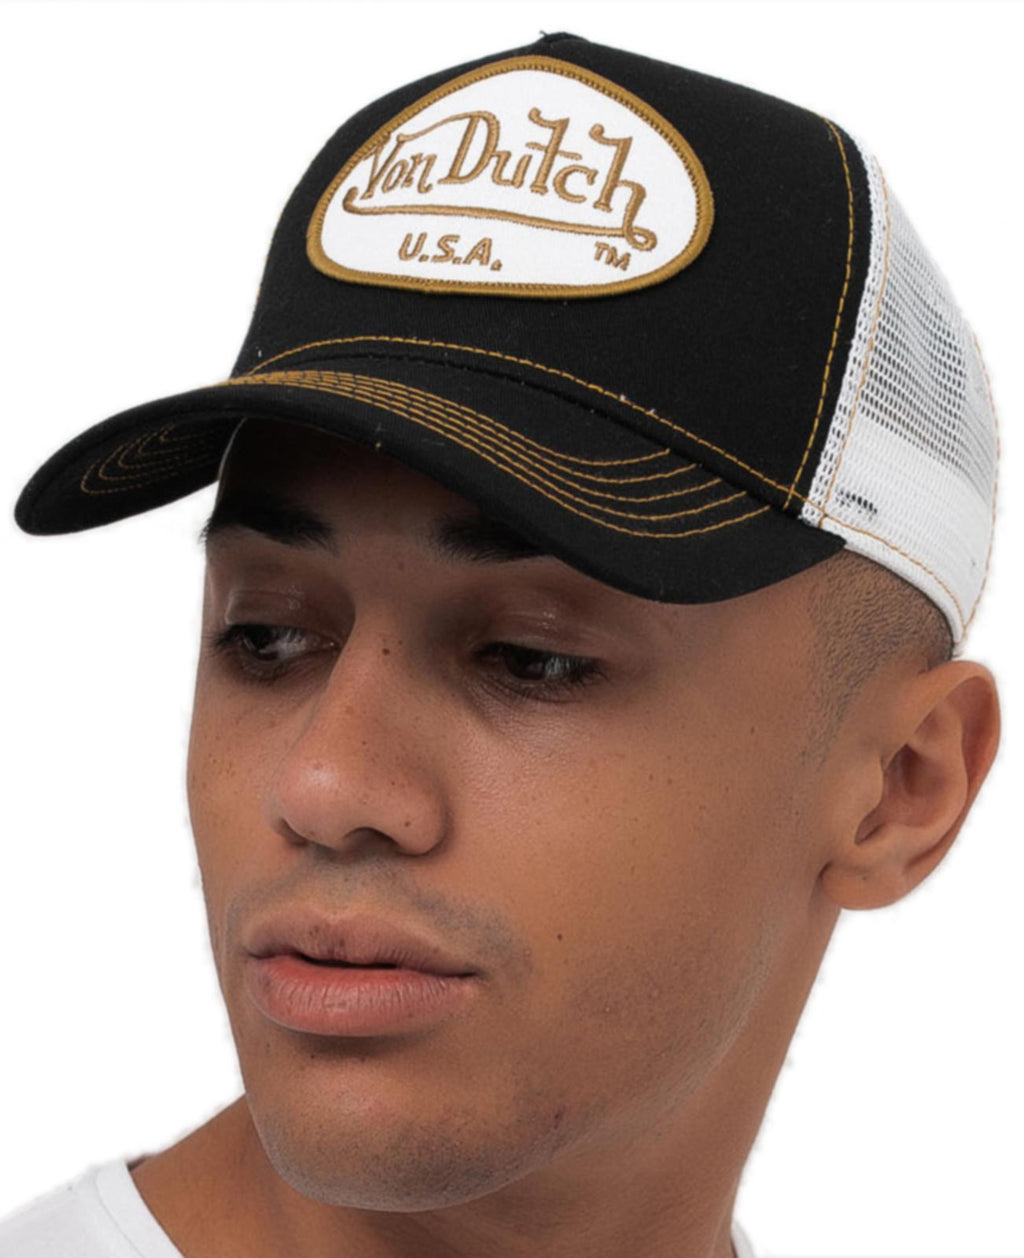 Von Dutch Trucker Snapback Baseball Cap Black